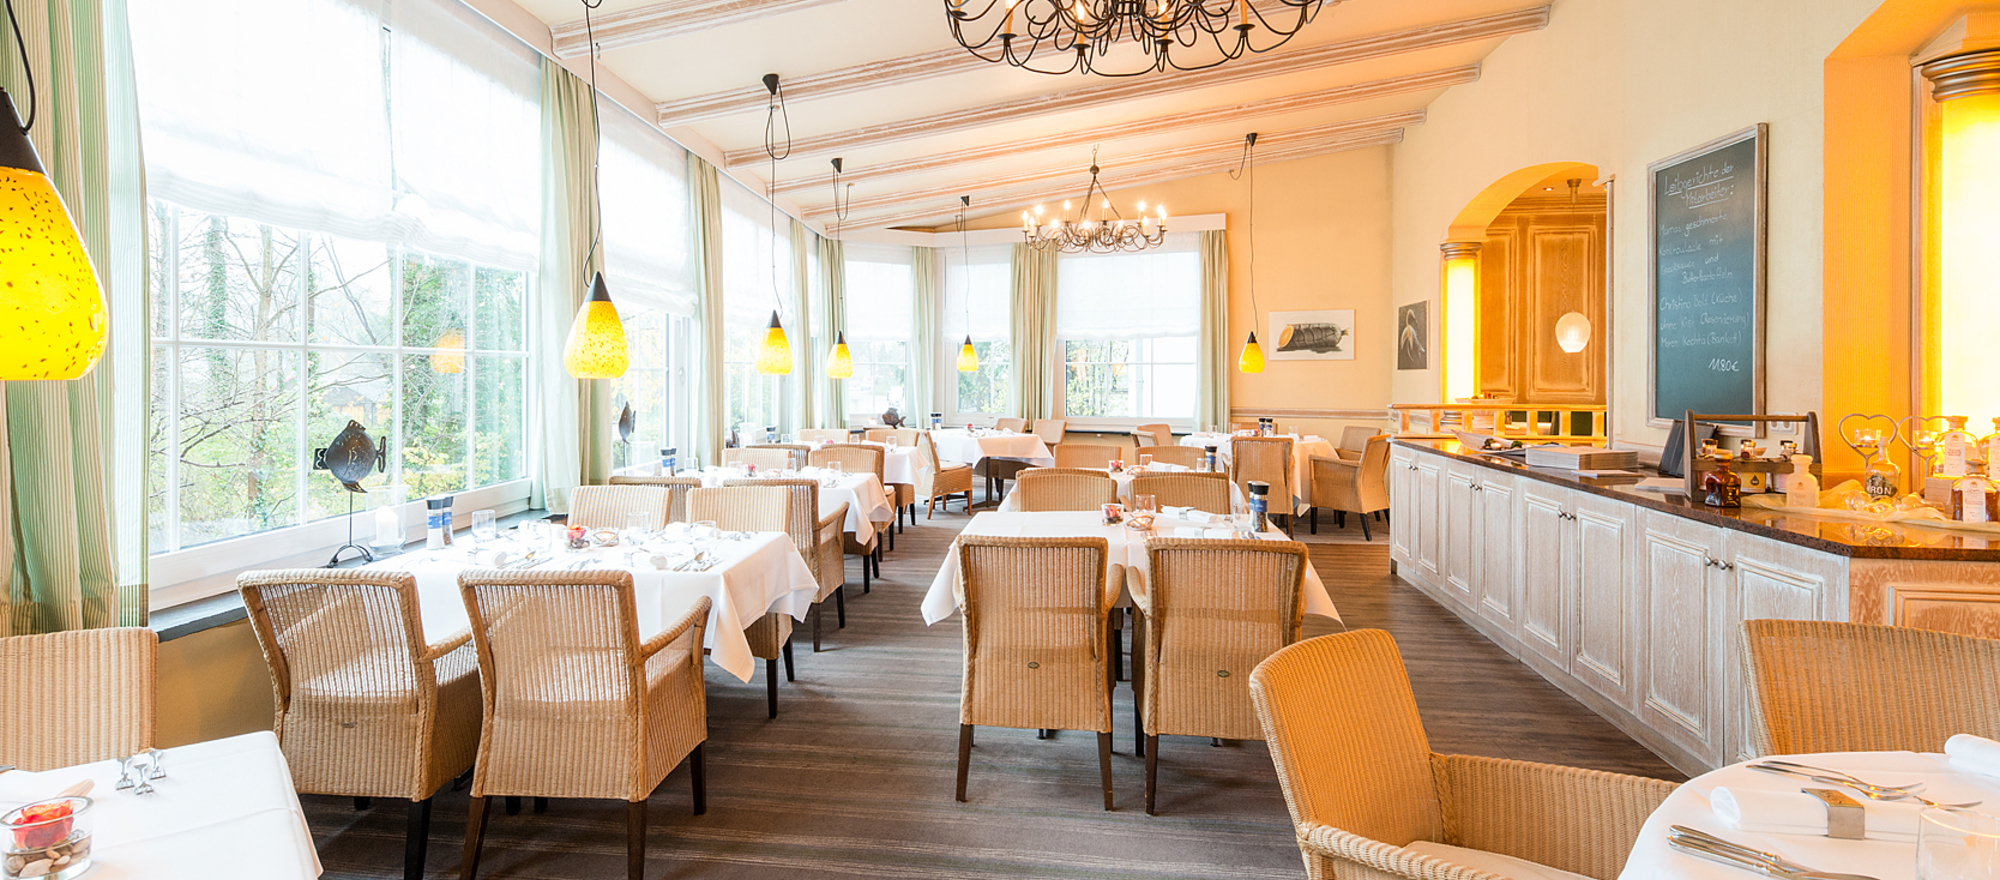 Fish and game specialties will be served in the restaurant Wels in the 4-star hotel Ringhotel Munte am Stadtwald in Bremen